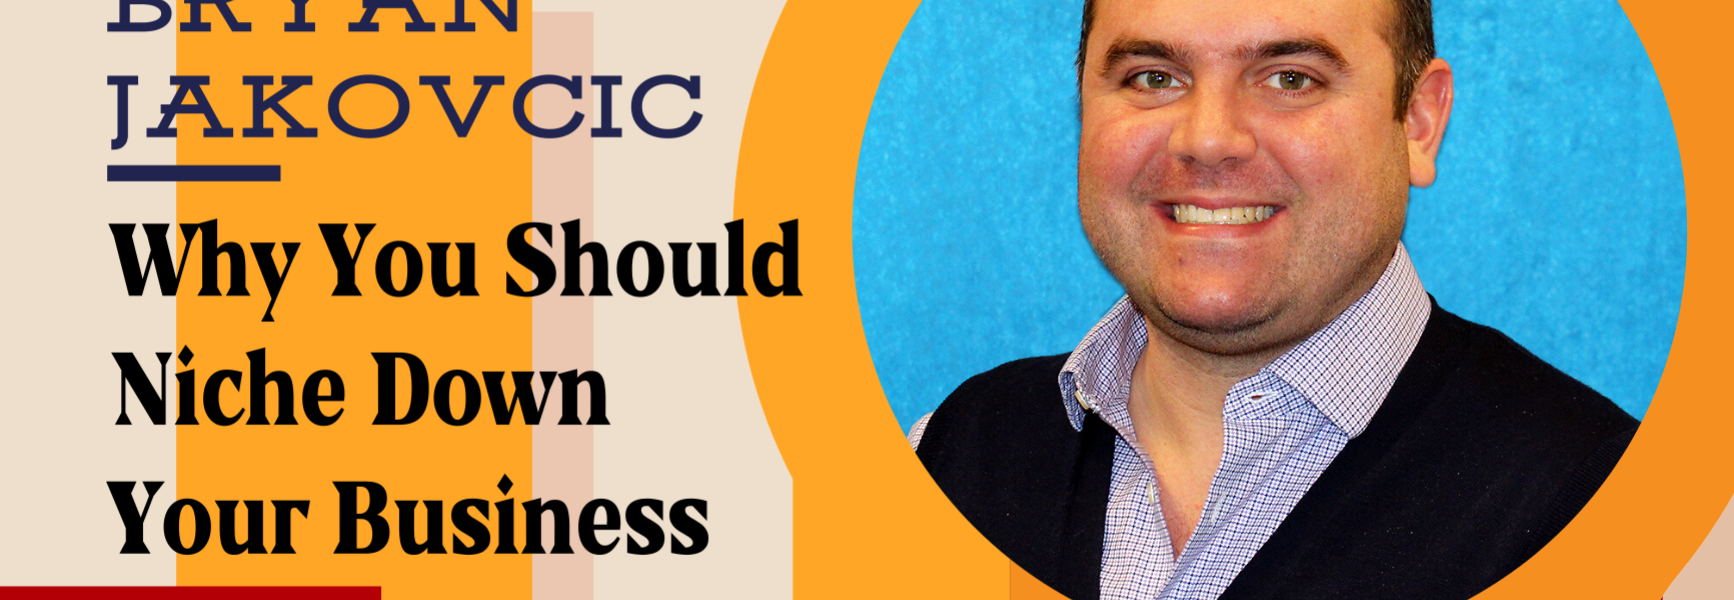 Image of Niche Marketing: Why You Should Niche Down Your Business with Bryan Jakovcic